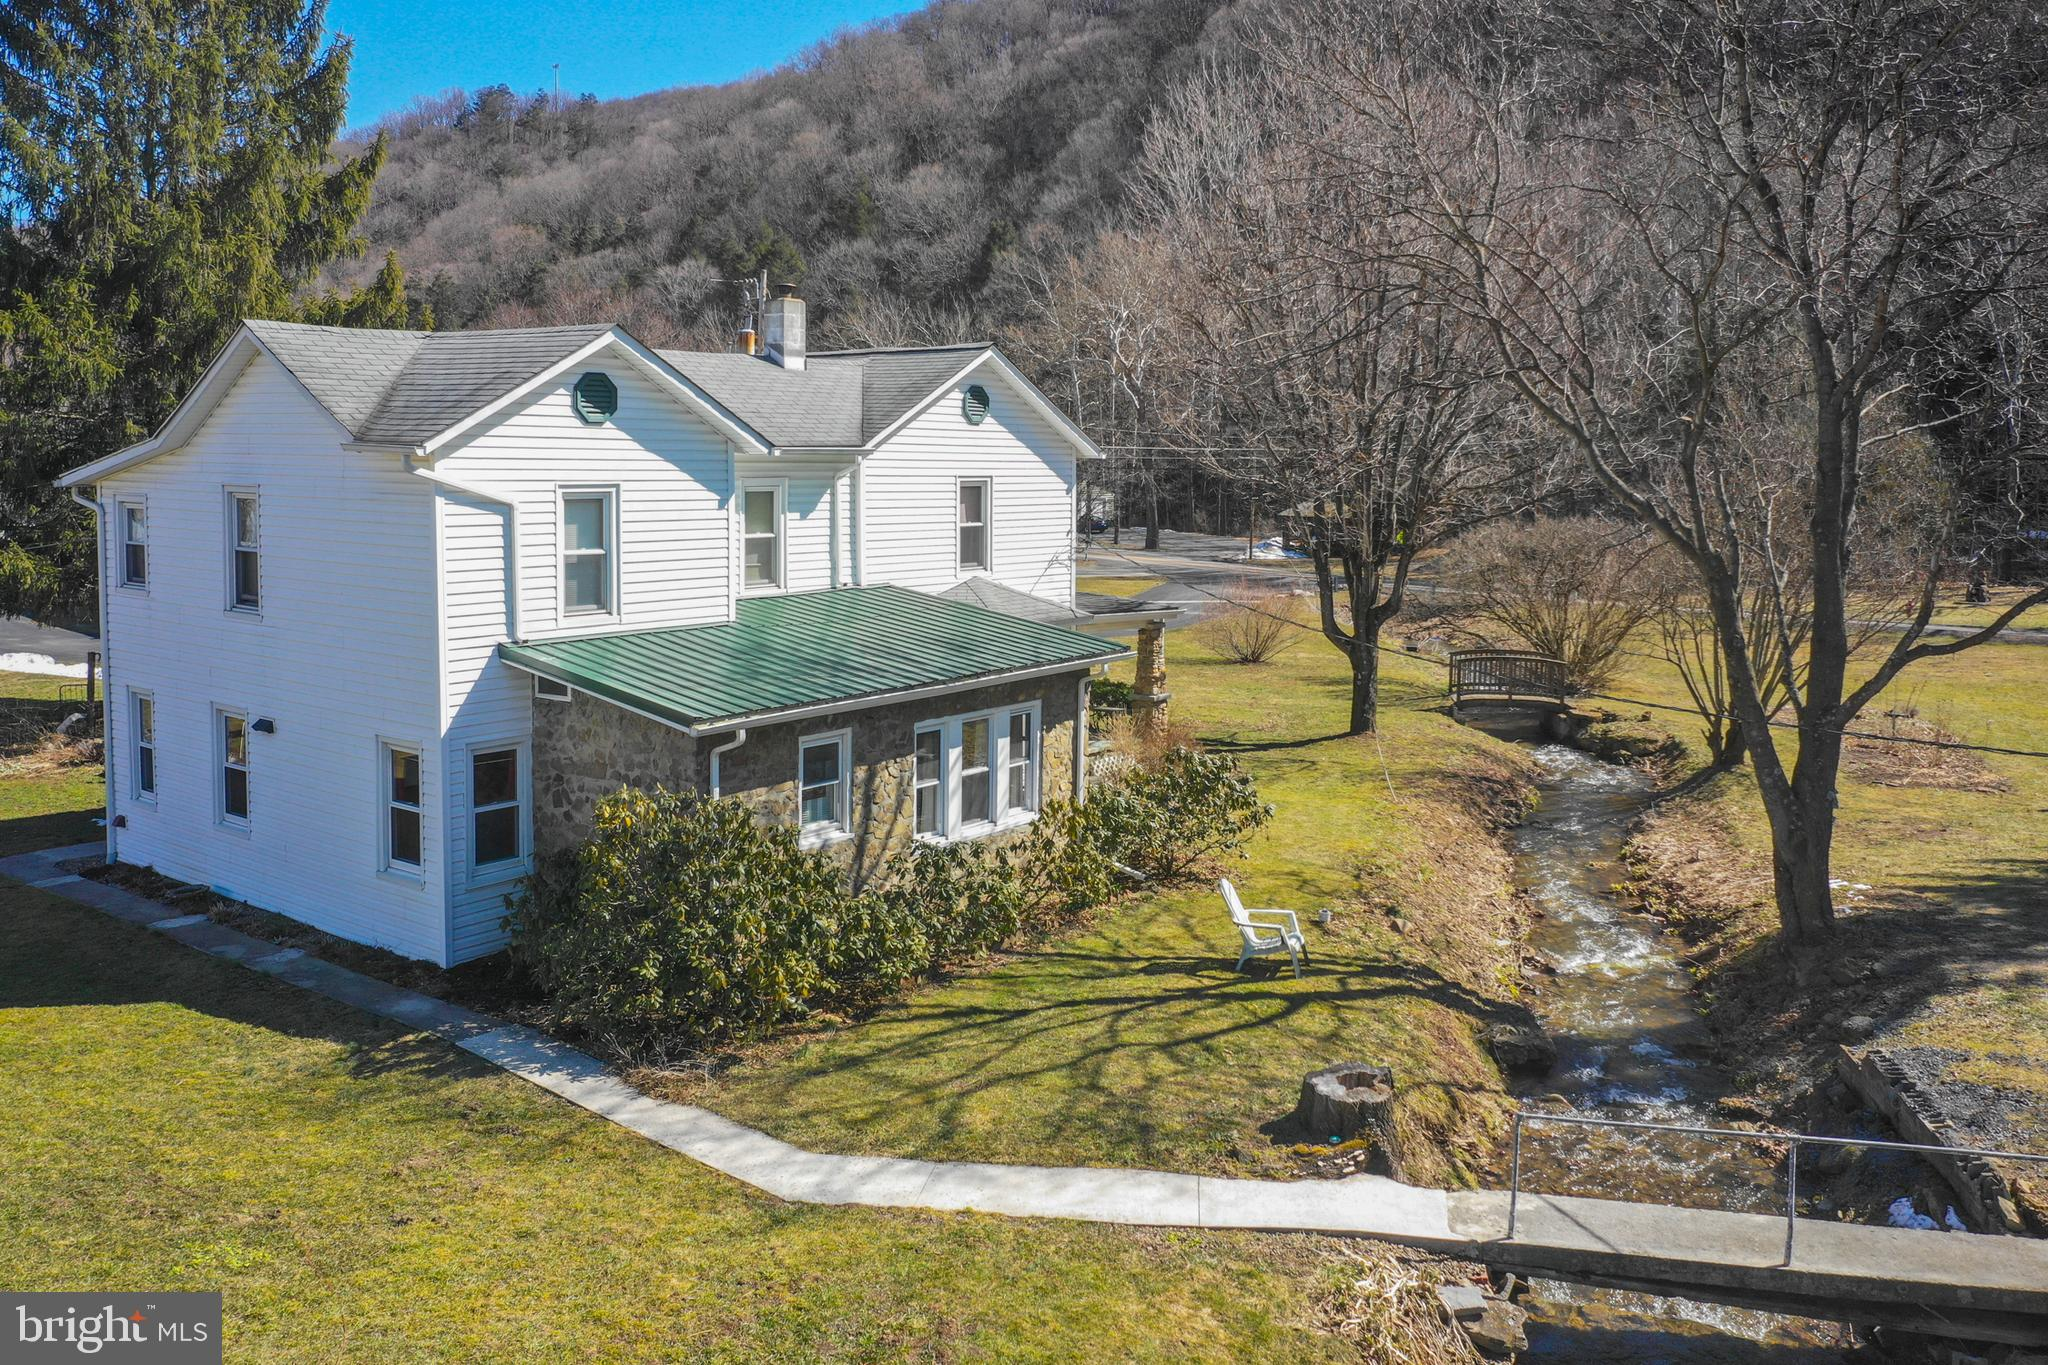 32 GARDNERS LANE, NEW CREEK, WV 26743